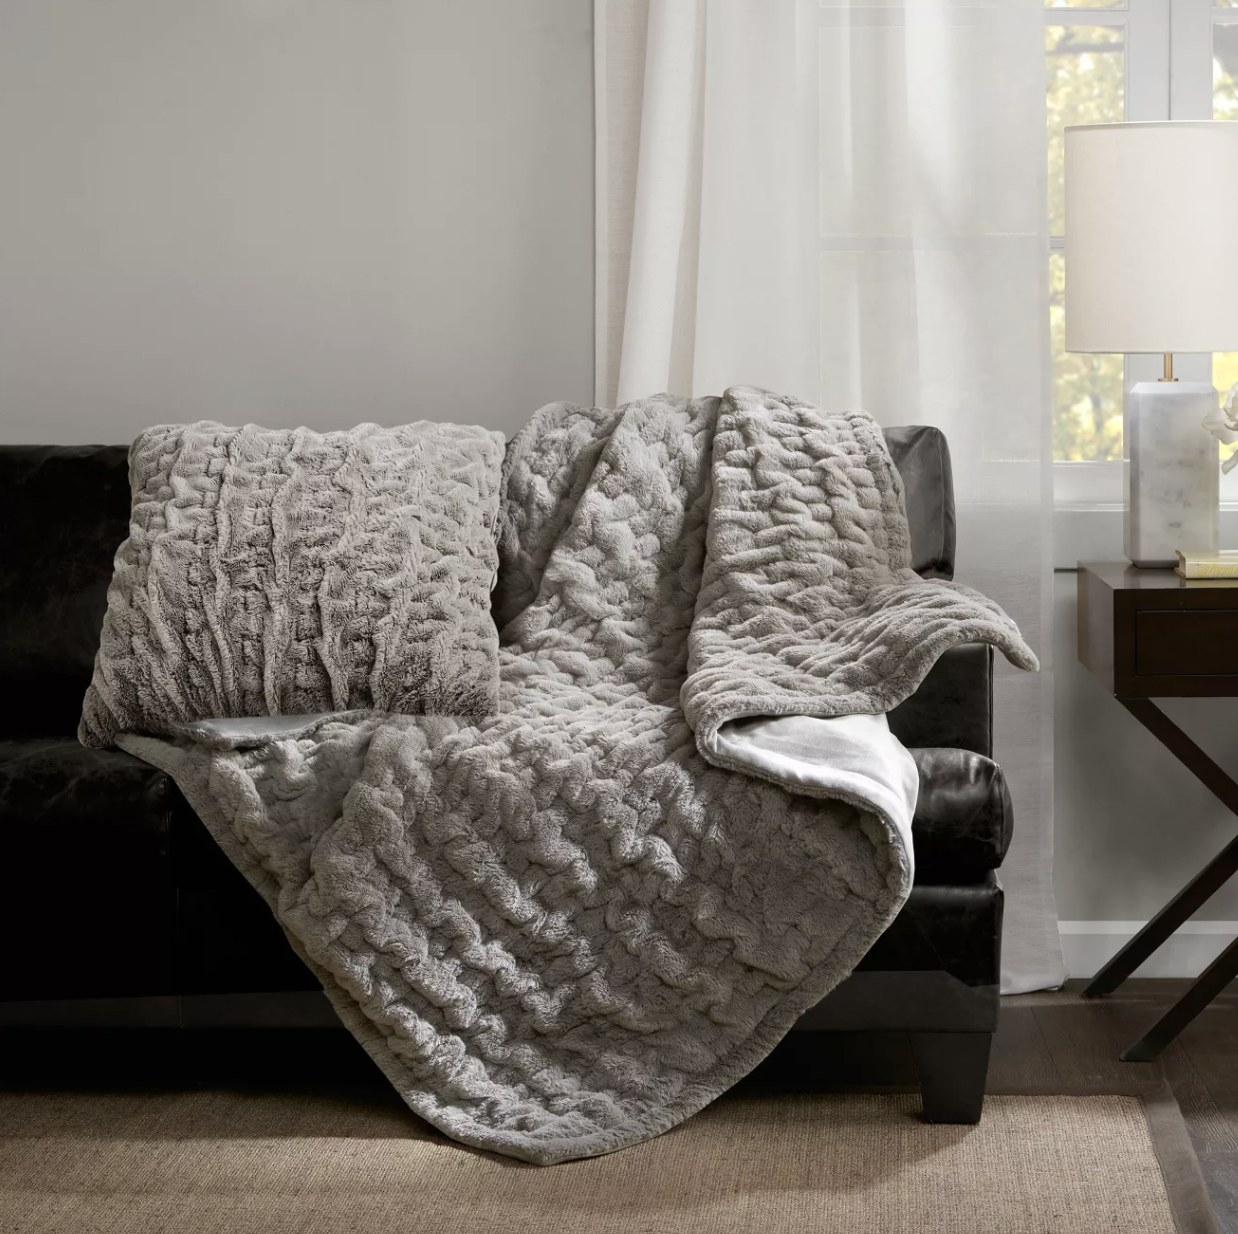 a ruched faux fur throw blanket in grey draped over a couch in a living room